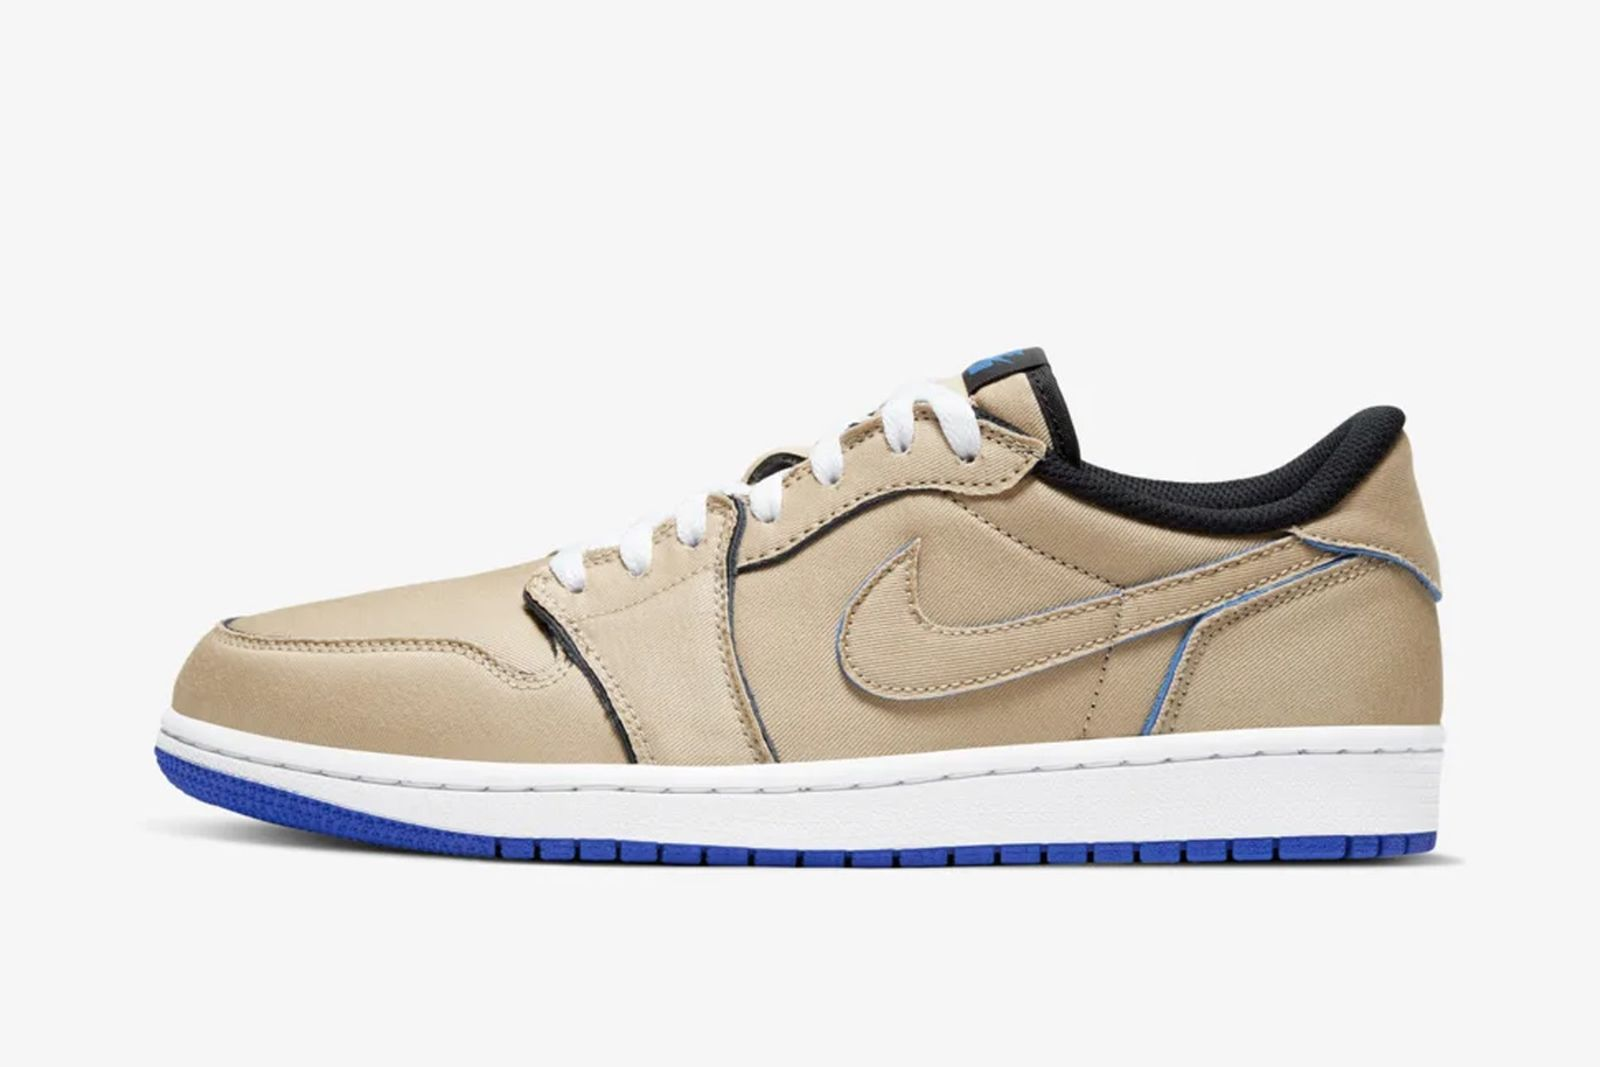 nike-air-jordan-1-low-unc-royal-release-date-price-03